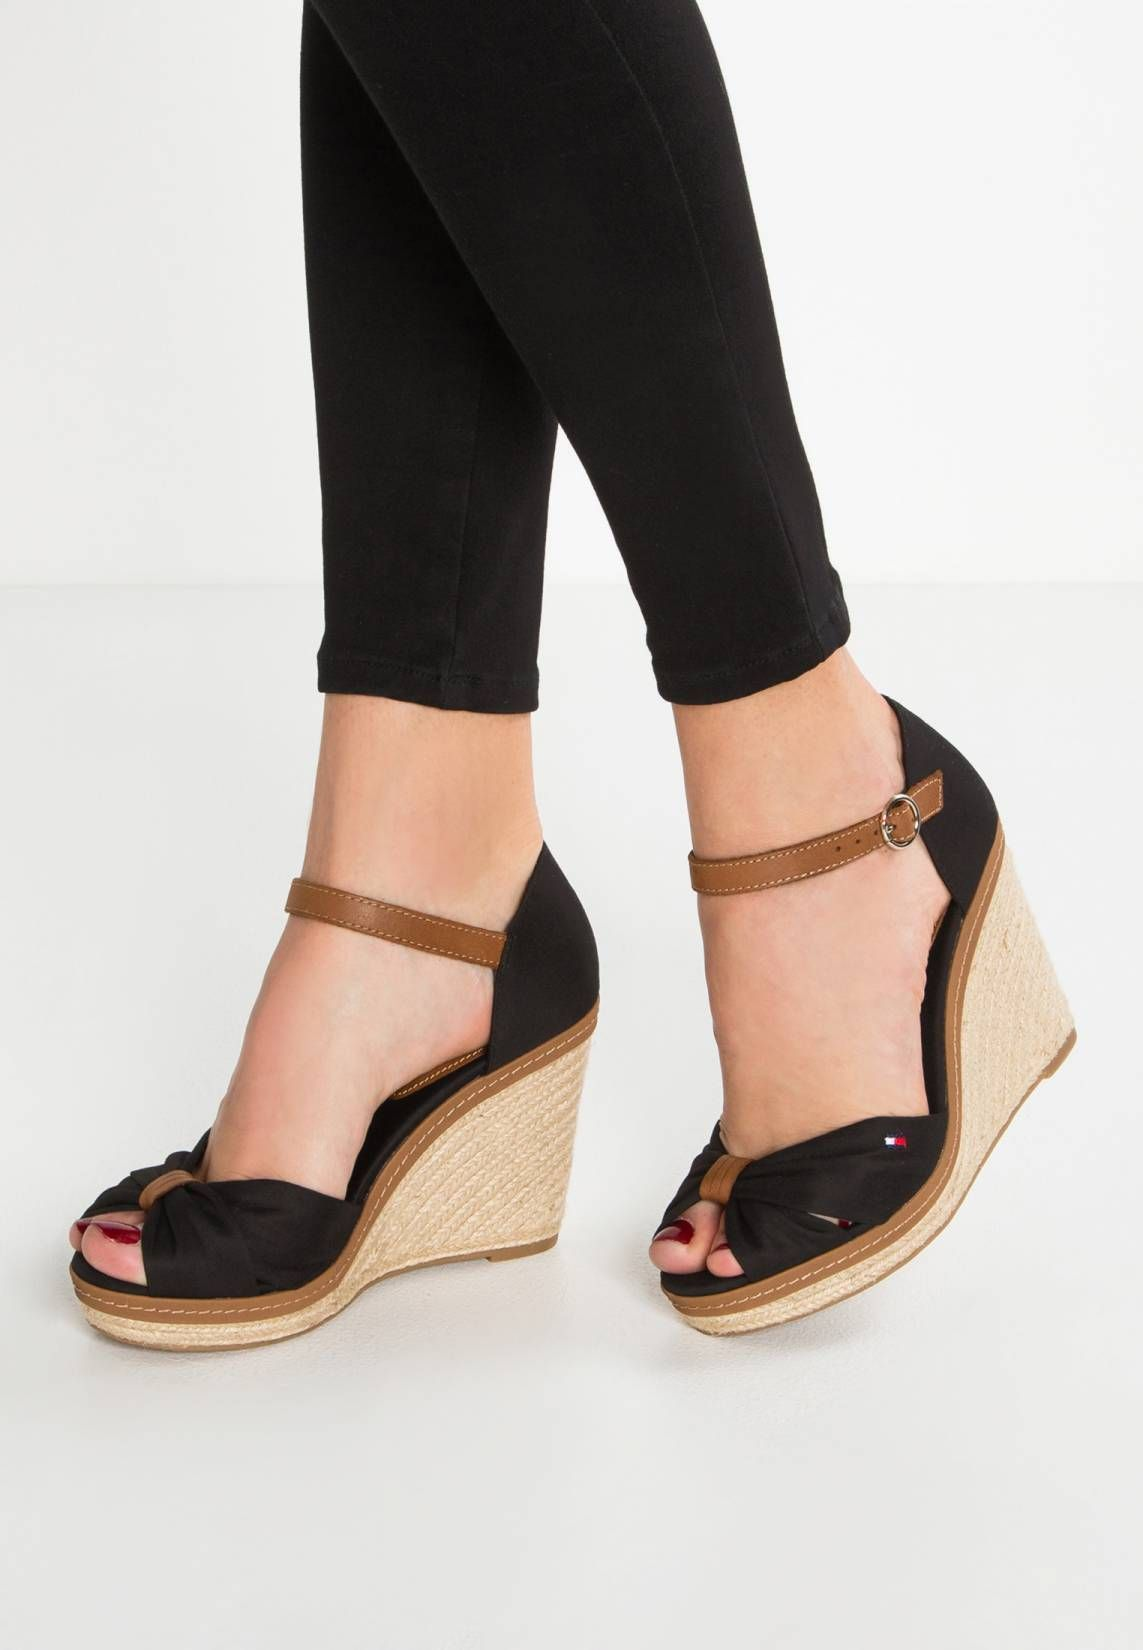 High Heeled Sandals Black Shoes In 2019 Shoes Heels